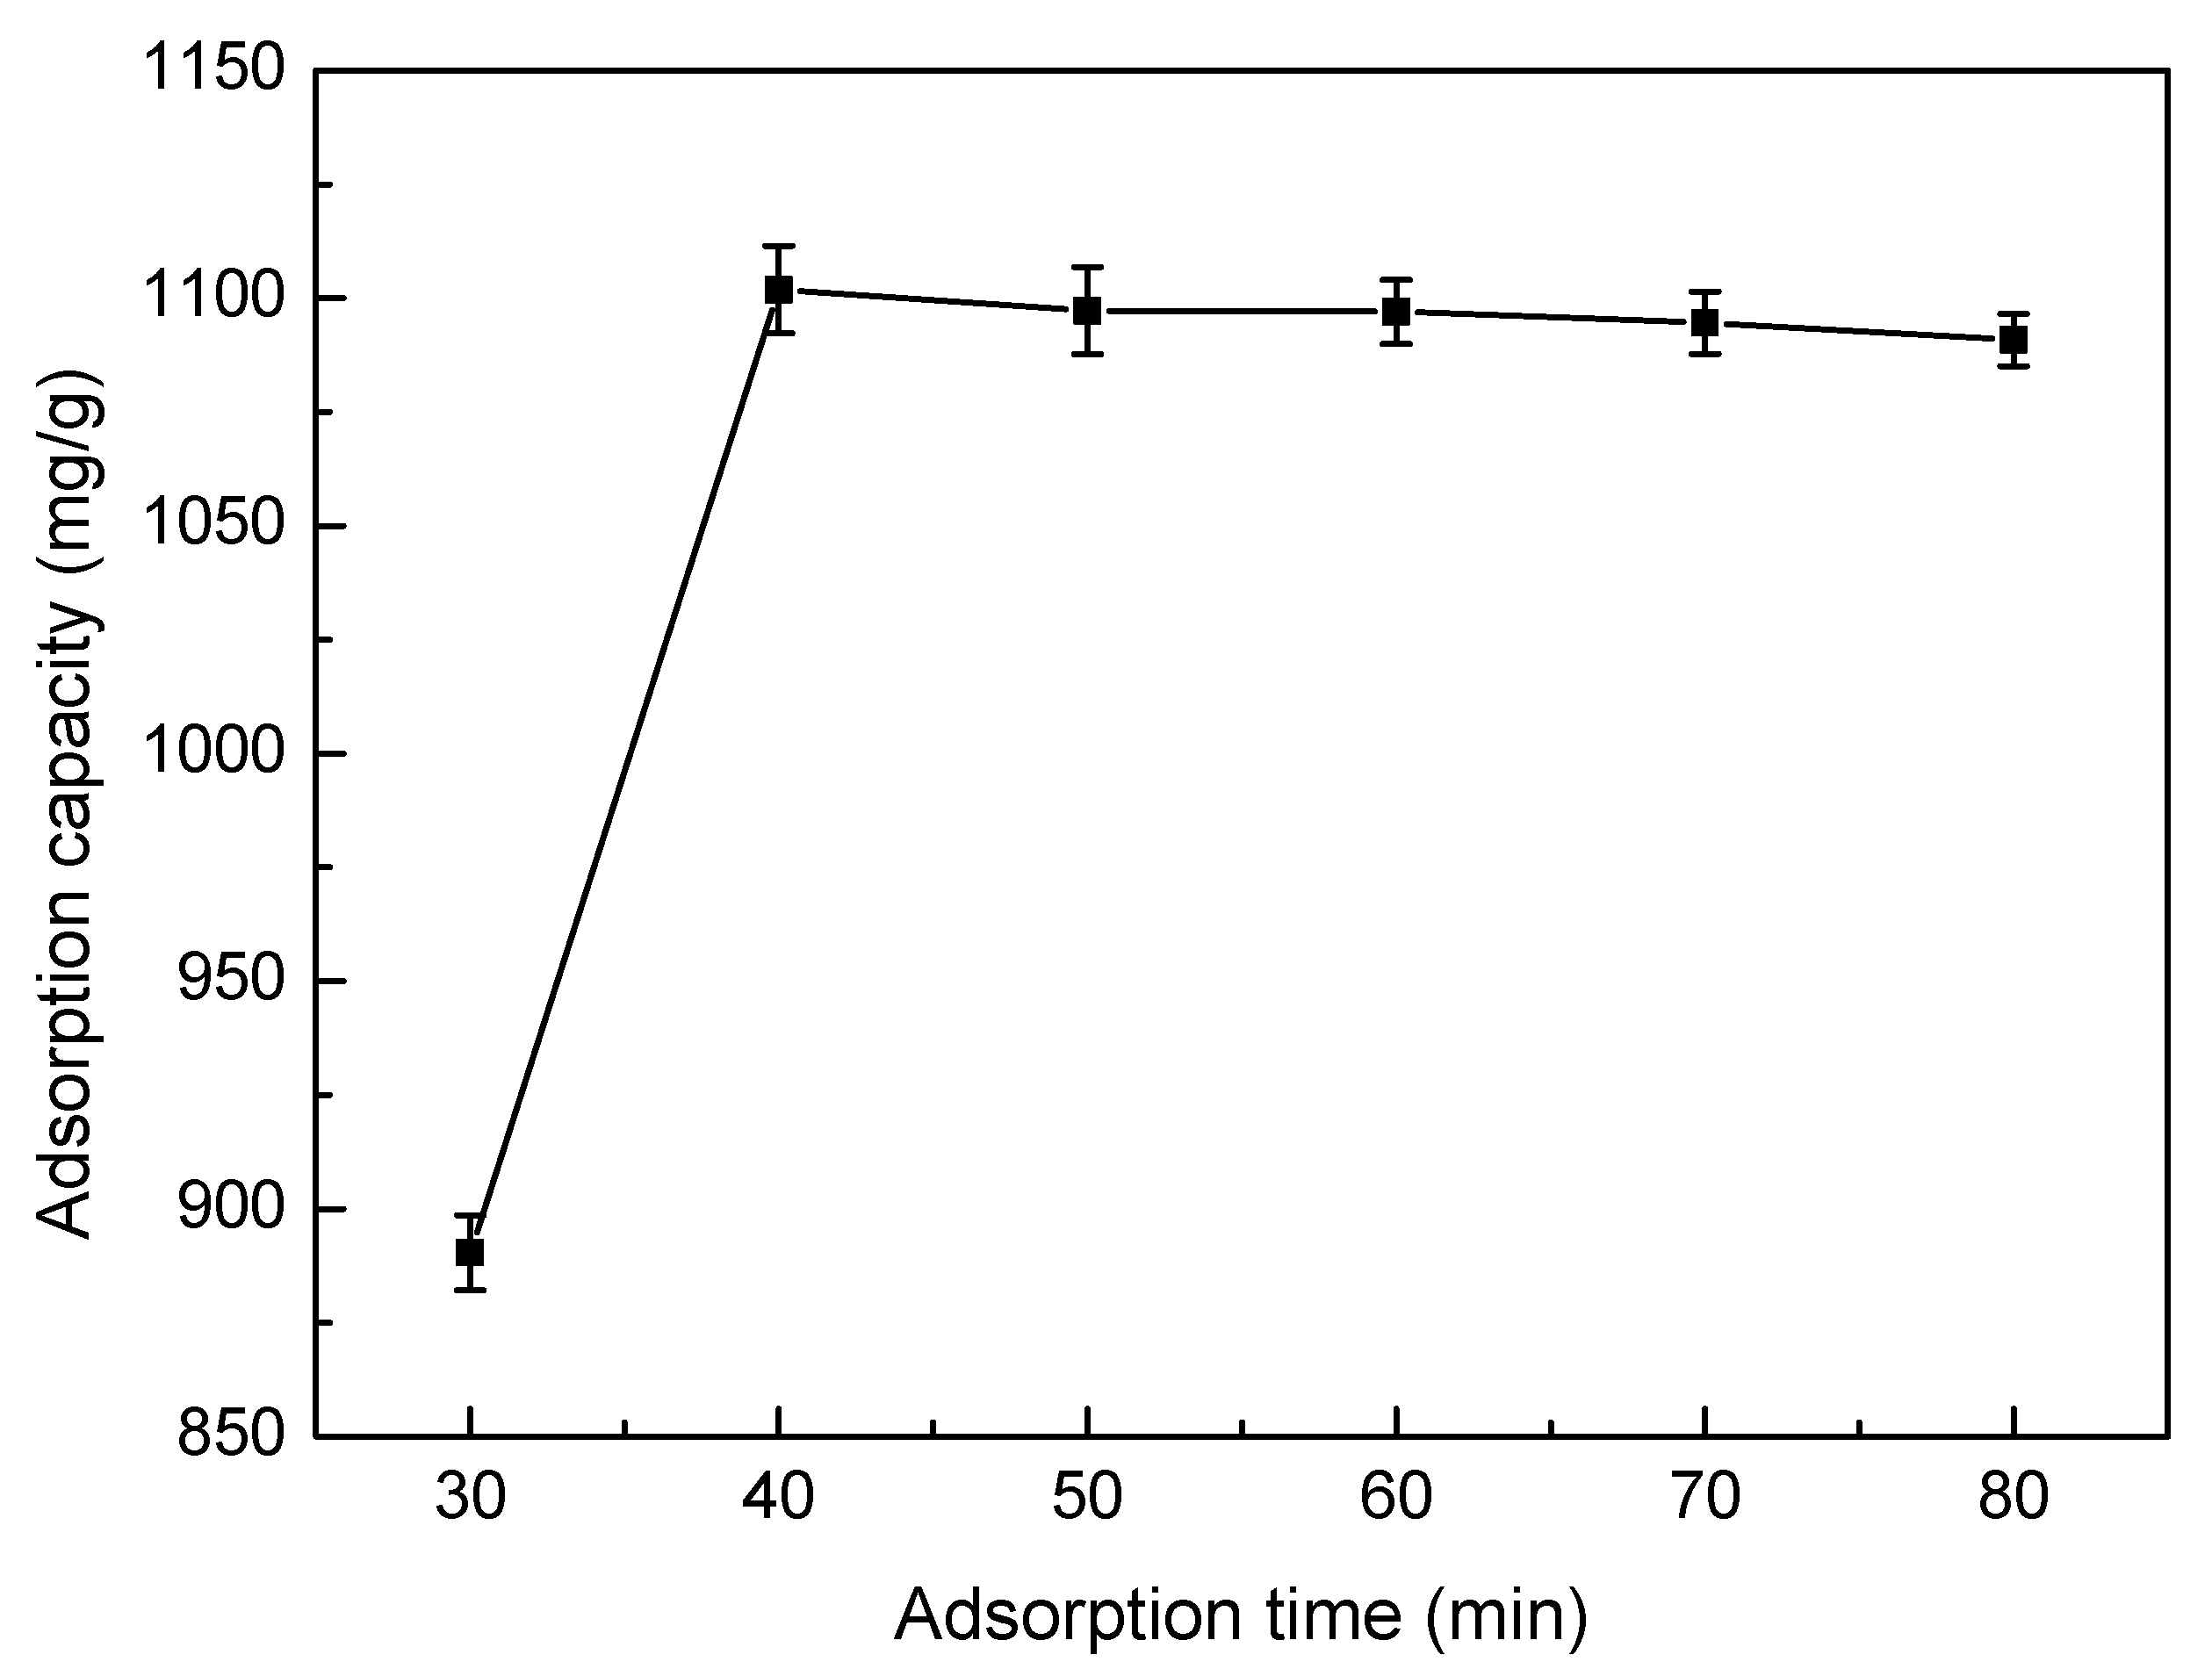 adsorption experiment Adsorption experiments arsenate adsorption kinetics experiments were carried out in 50-ml polyethylene centrifuges tubes, precleaned with 1% hno 3 and rinsed several times with milliq water known amounts of each sample were suspended in 001 m nano 3.